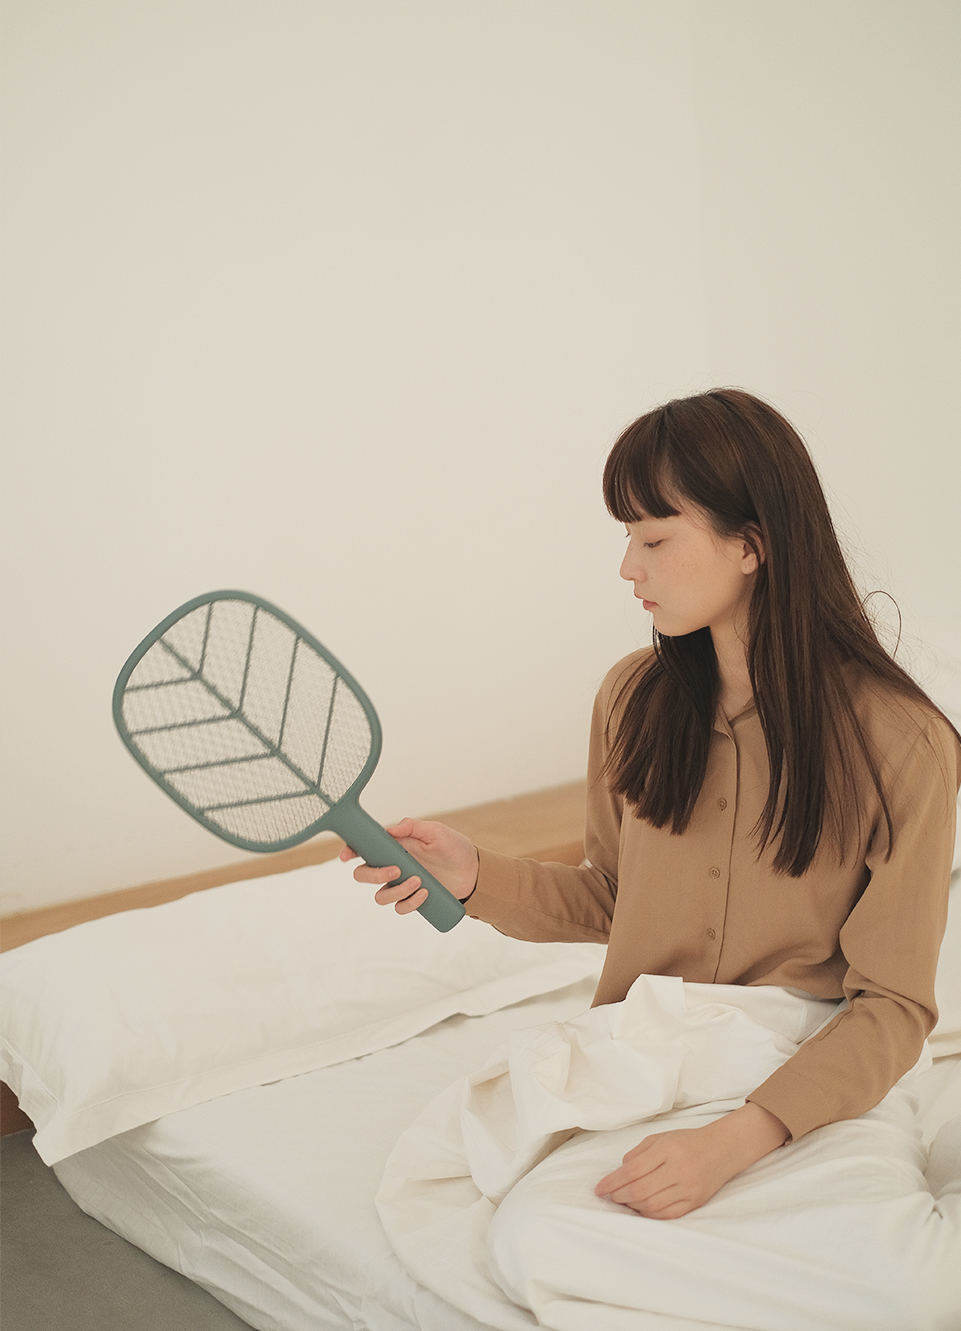 P2-Electric Mosquito Swatter images